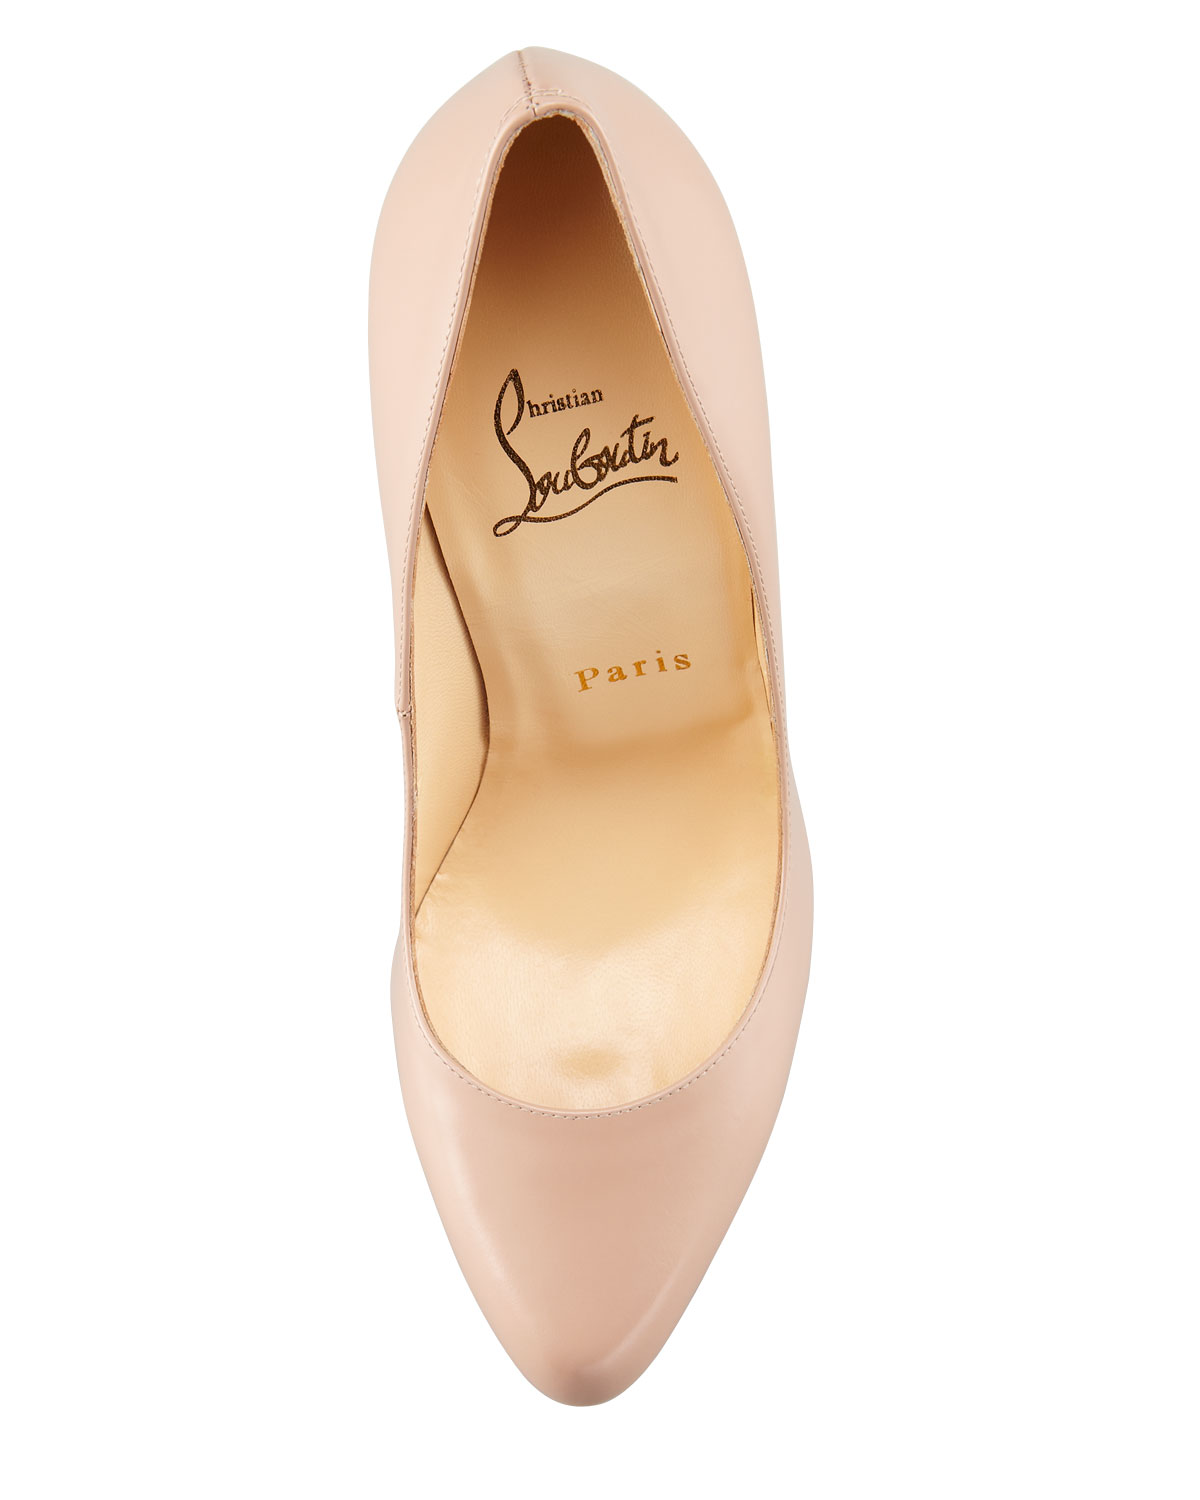 louboutin loafer - Christian louboutin Decollete Jazz Red Sole Pump in Beige (nude ...